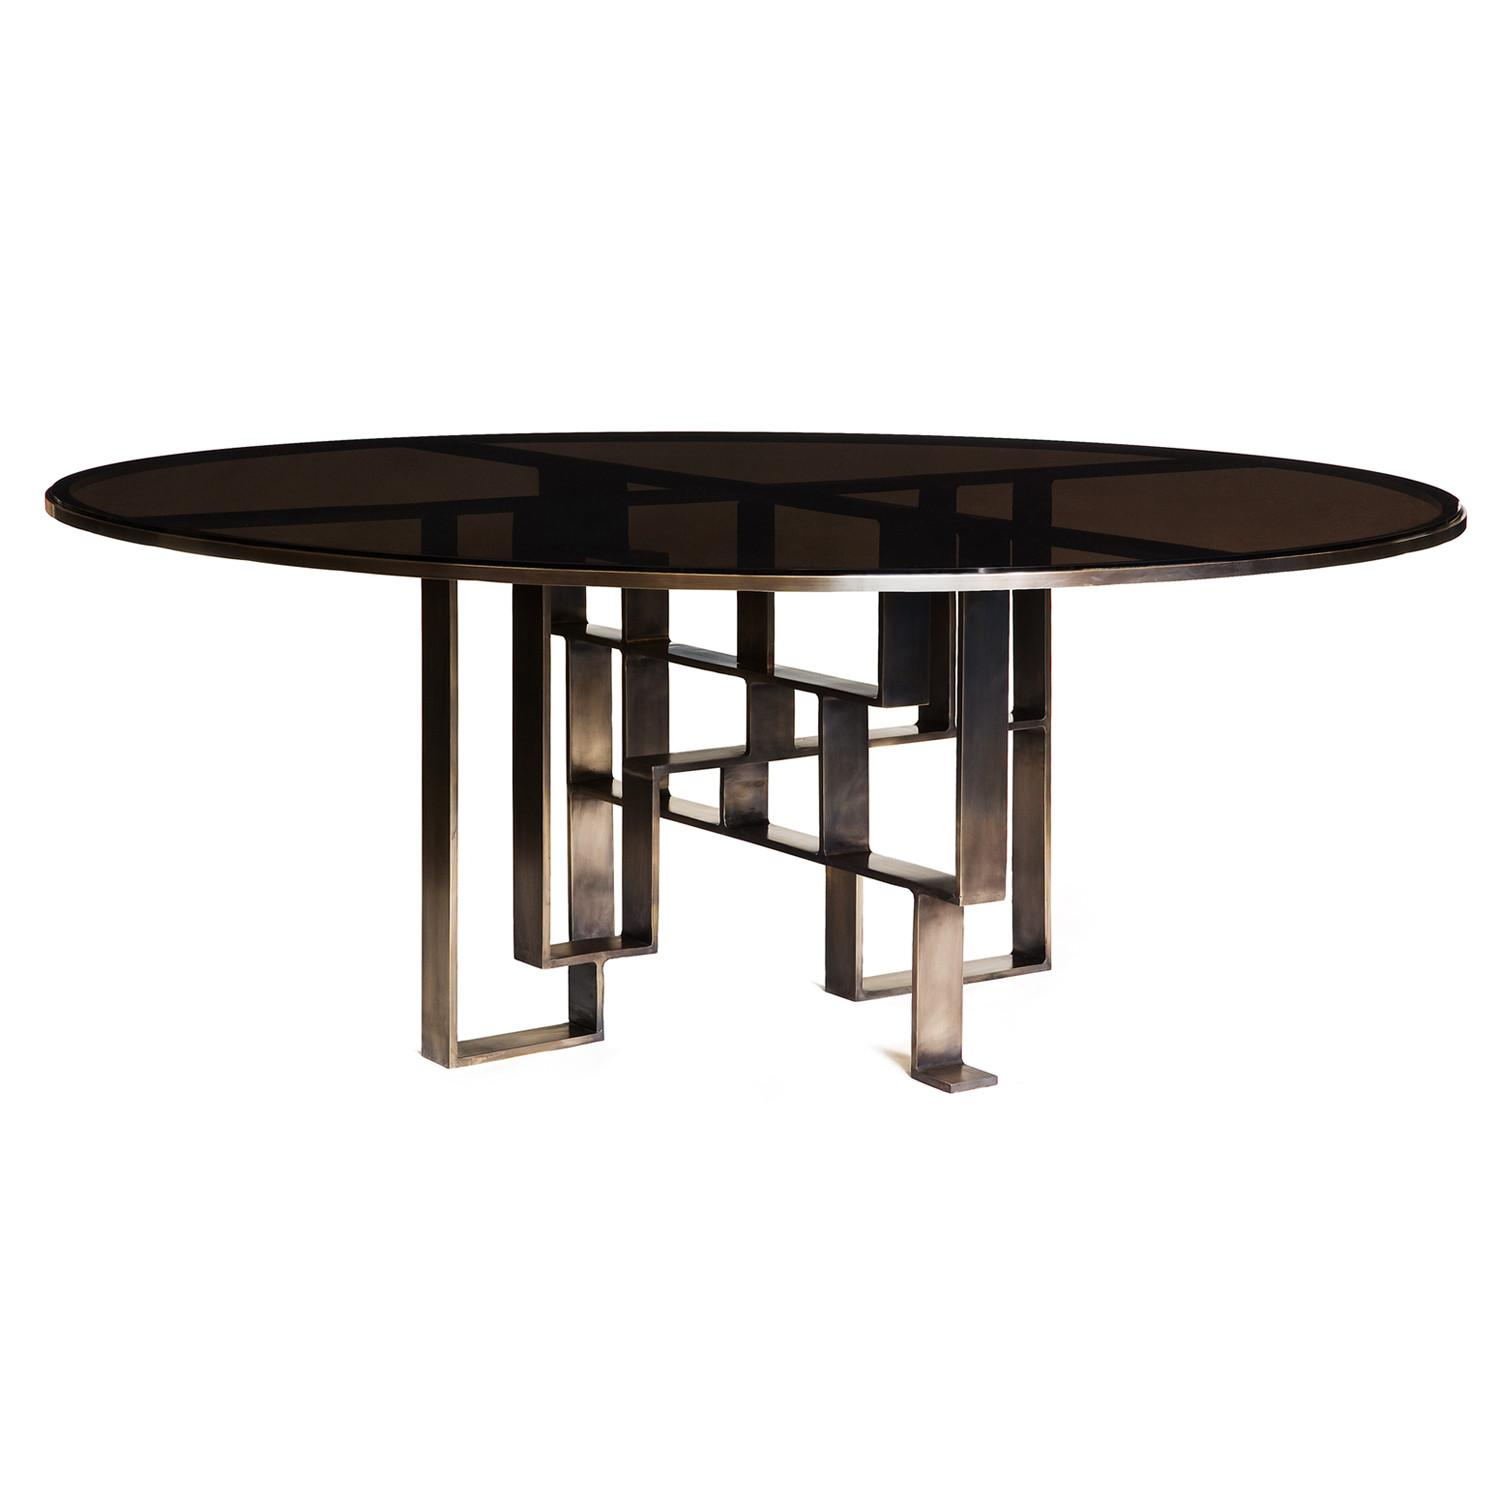 Dining Room Sets New Zealand Round Tables Small Spaces